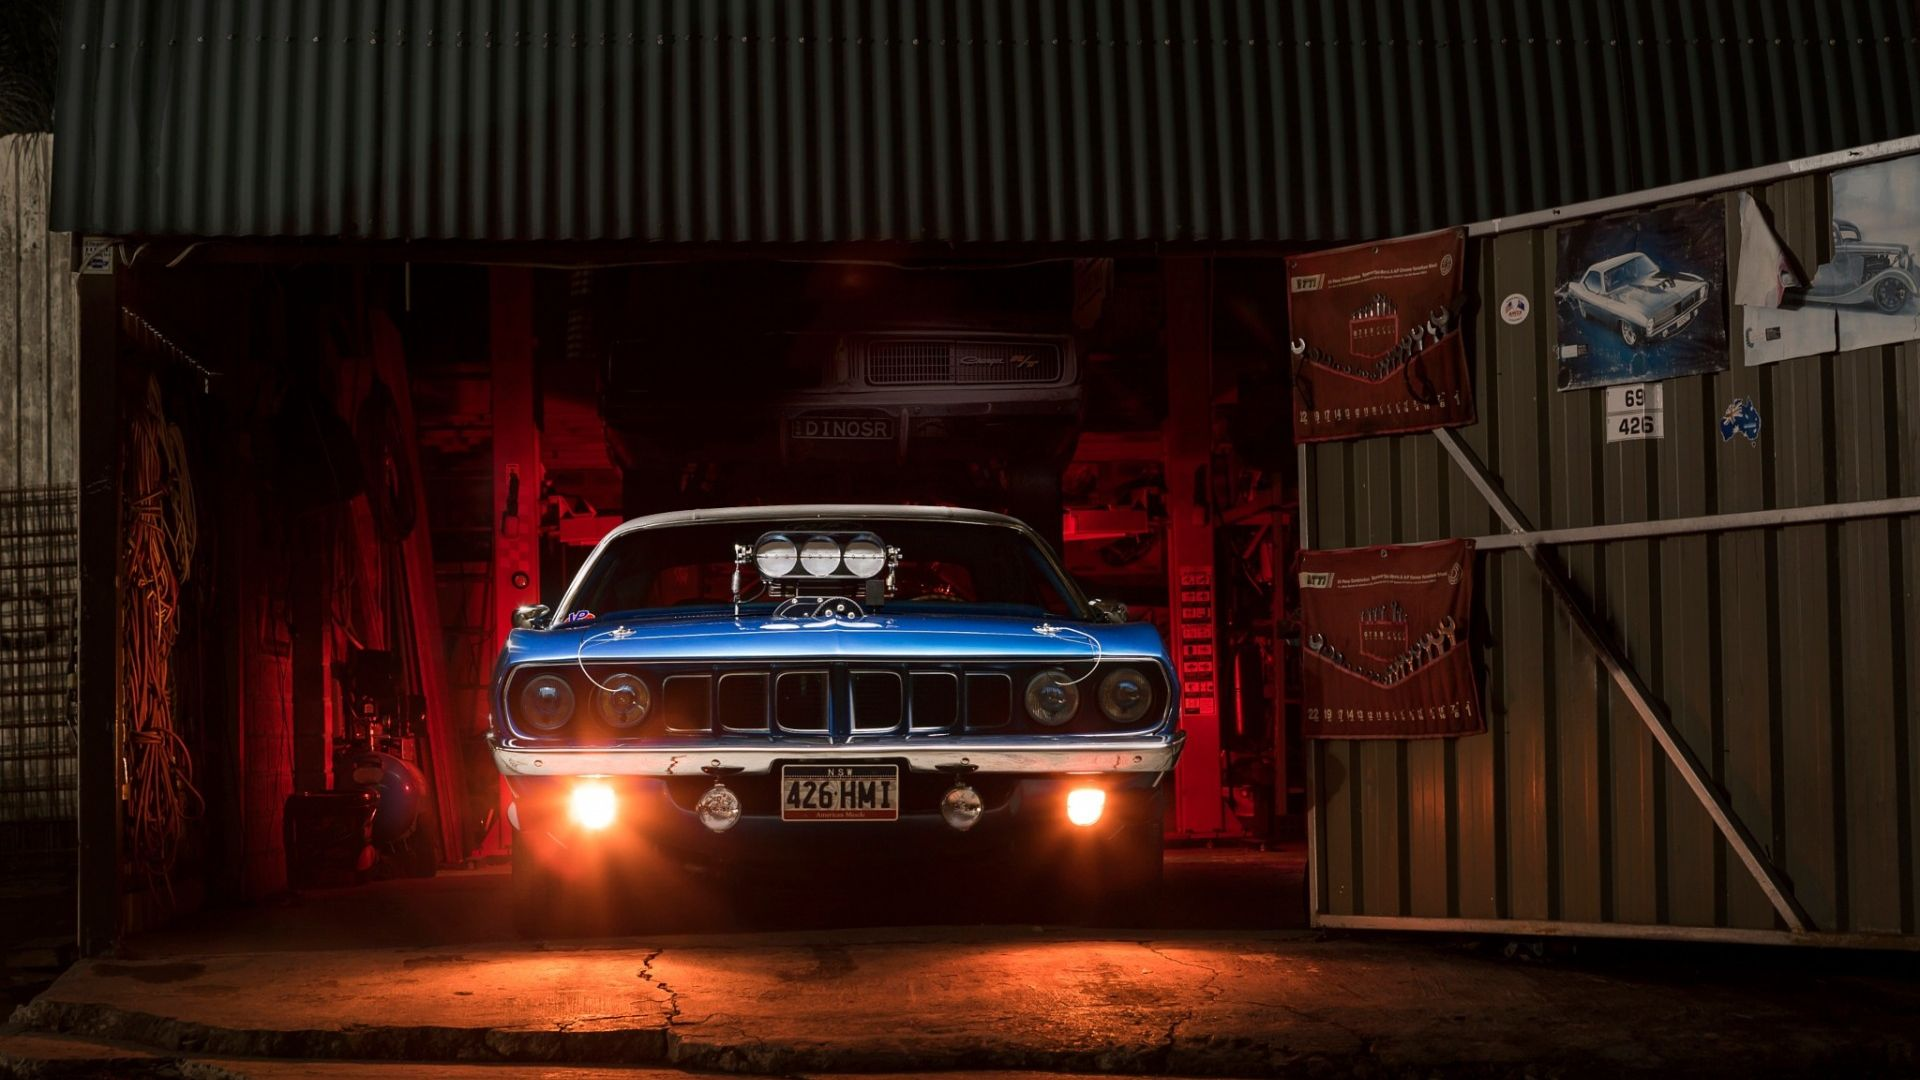 Iphone Muscle Car Wallpapers Desktop Wallpaper Plymouth Barracuda Classic Muscle Car